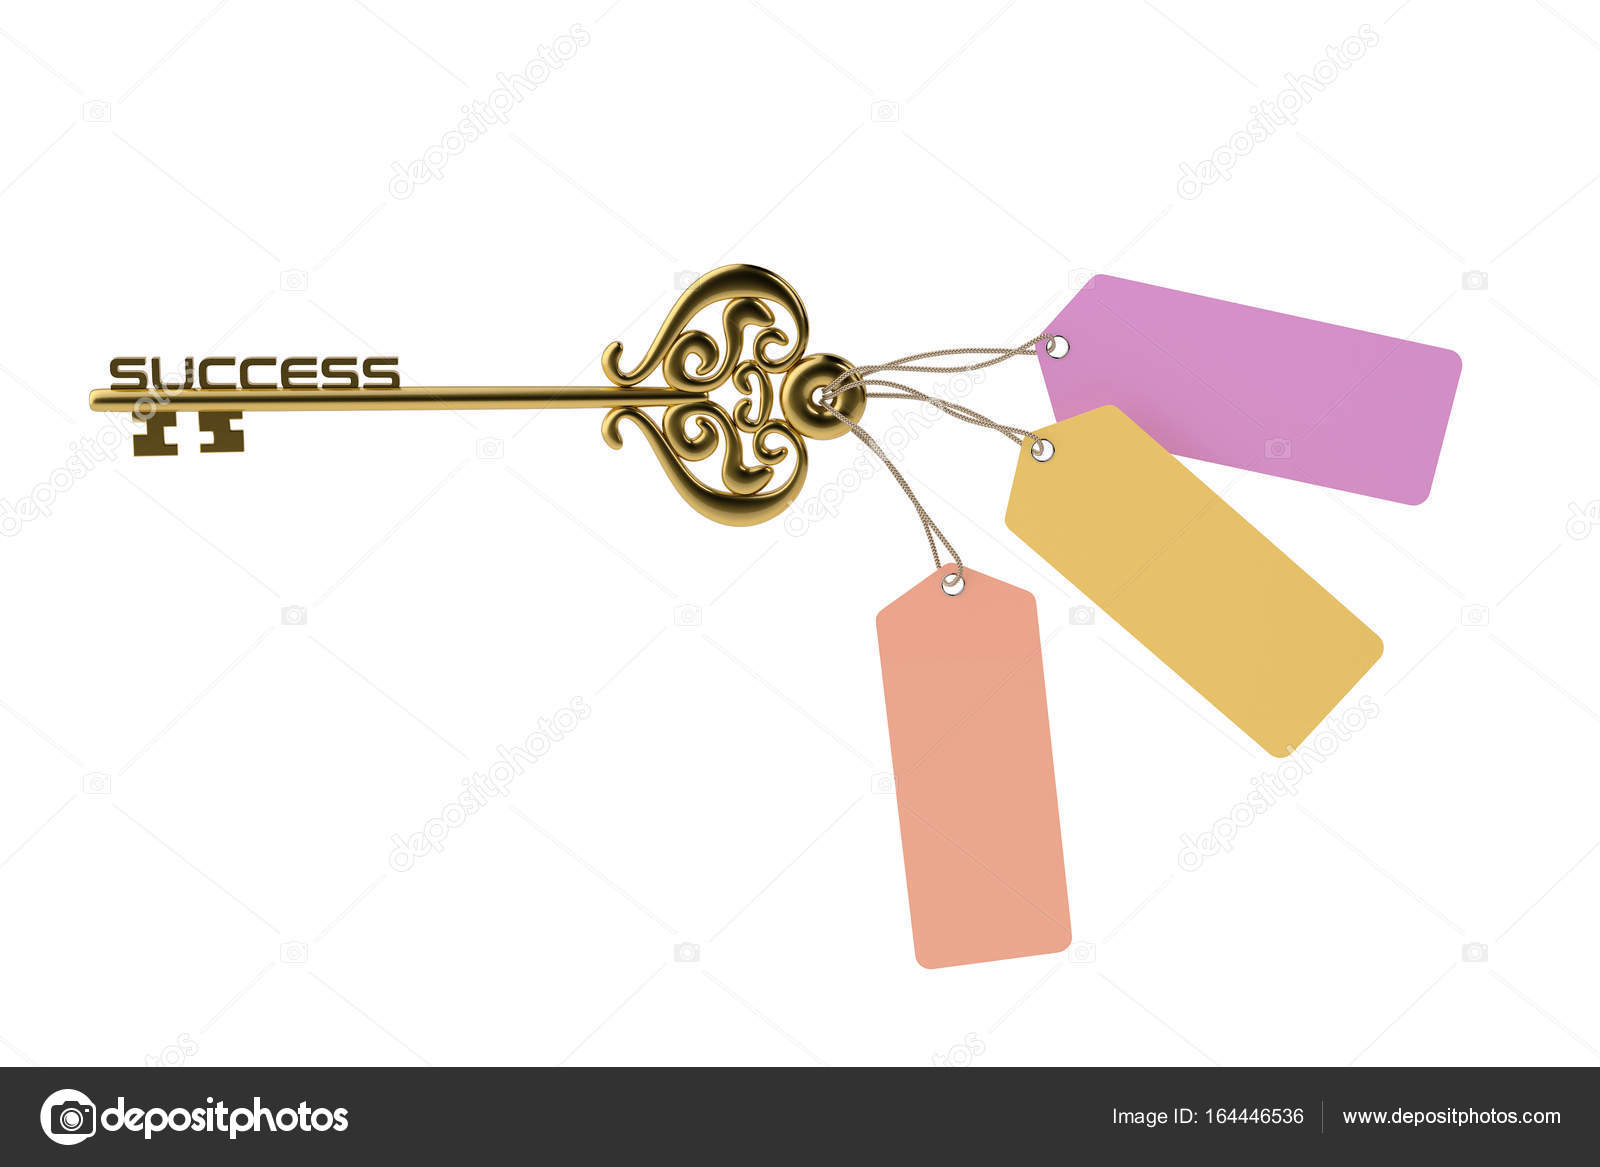 Successful gold key tag illustration stock photo holmessu 164446536 successful gold key tag illustration stock photo ccuart Choice Image